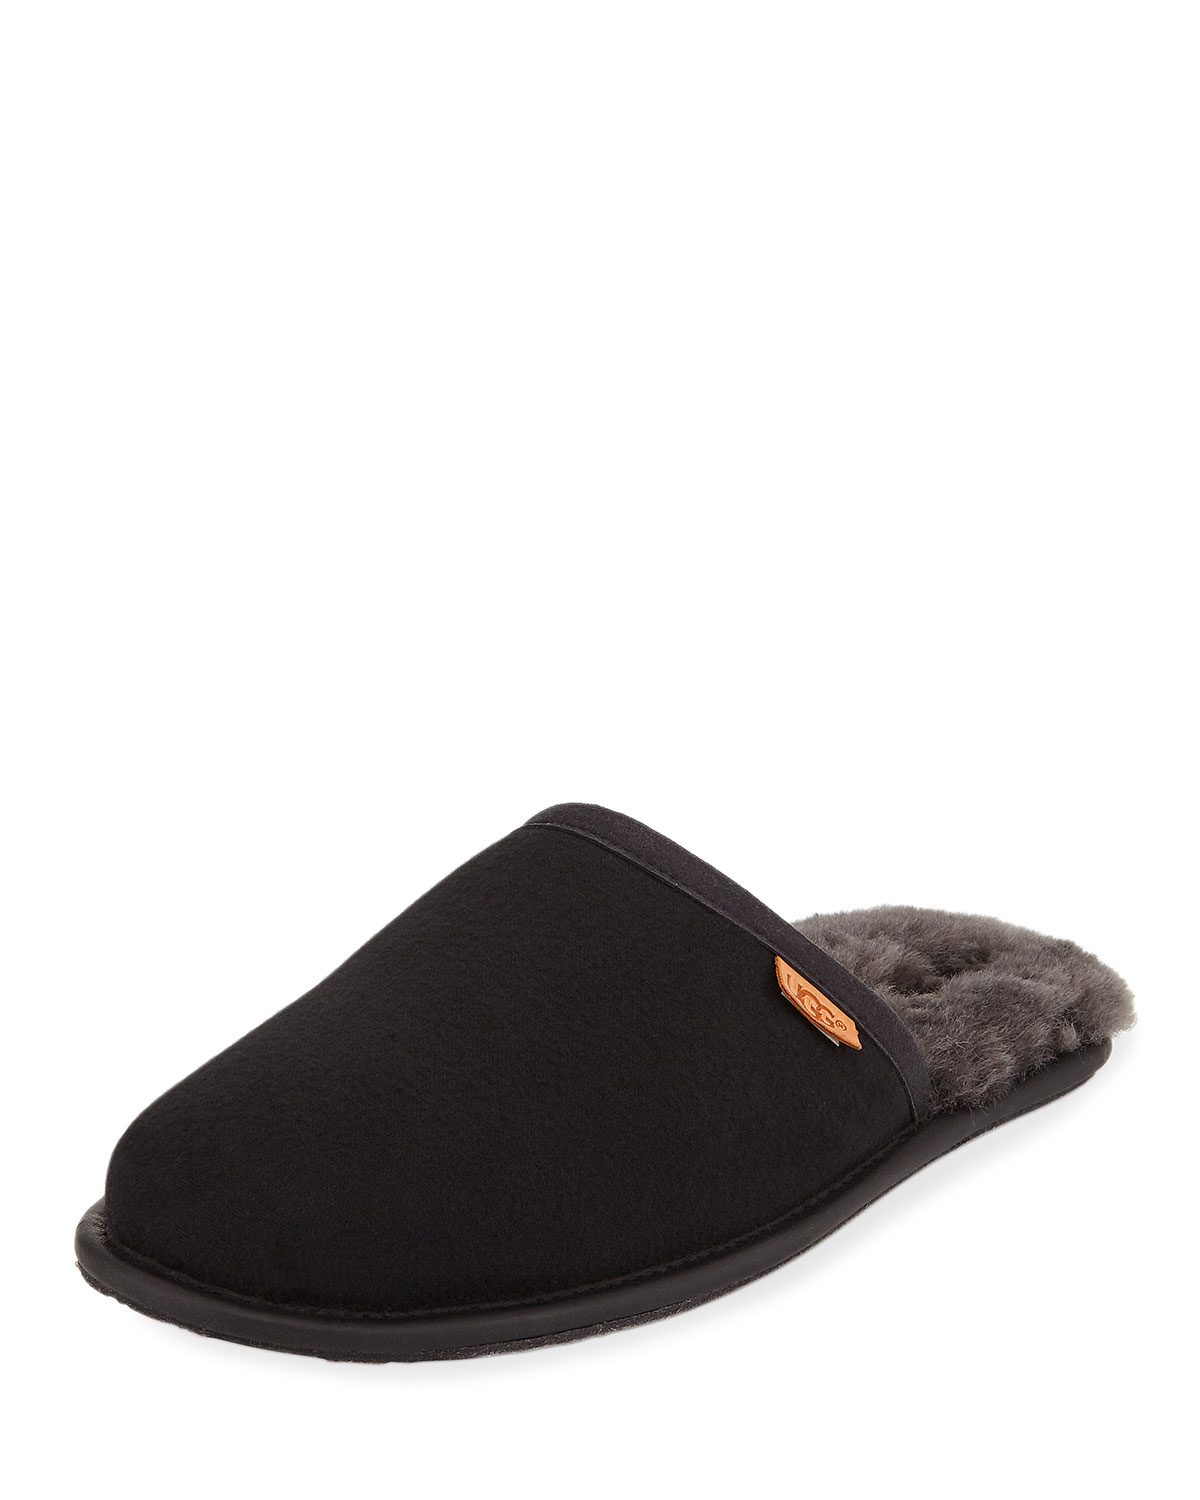 Men's Scuff Shearling Mule Slipper, Black